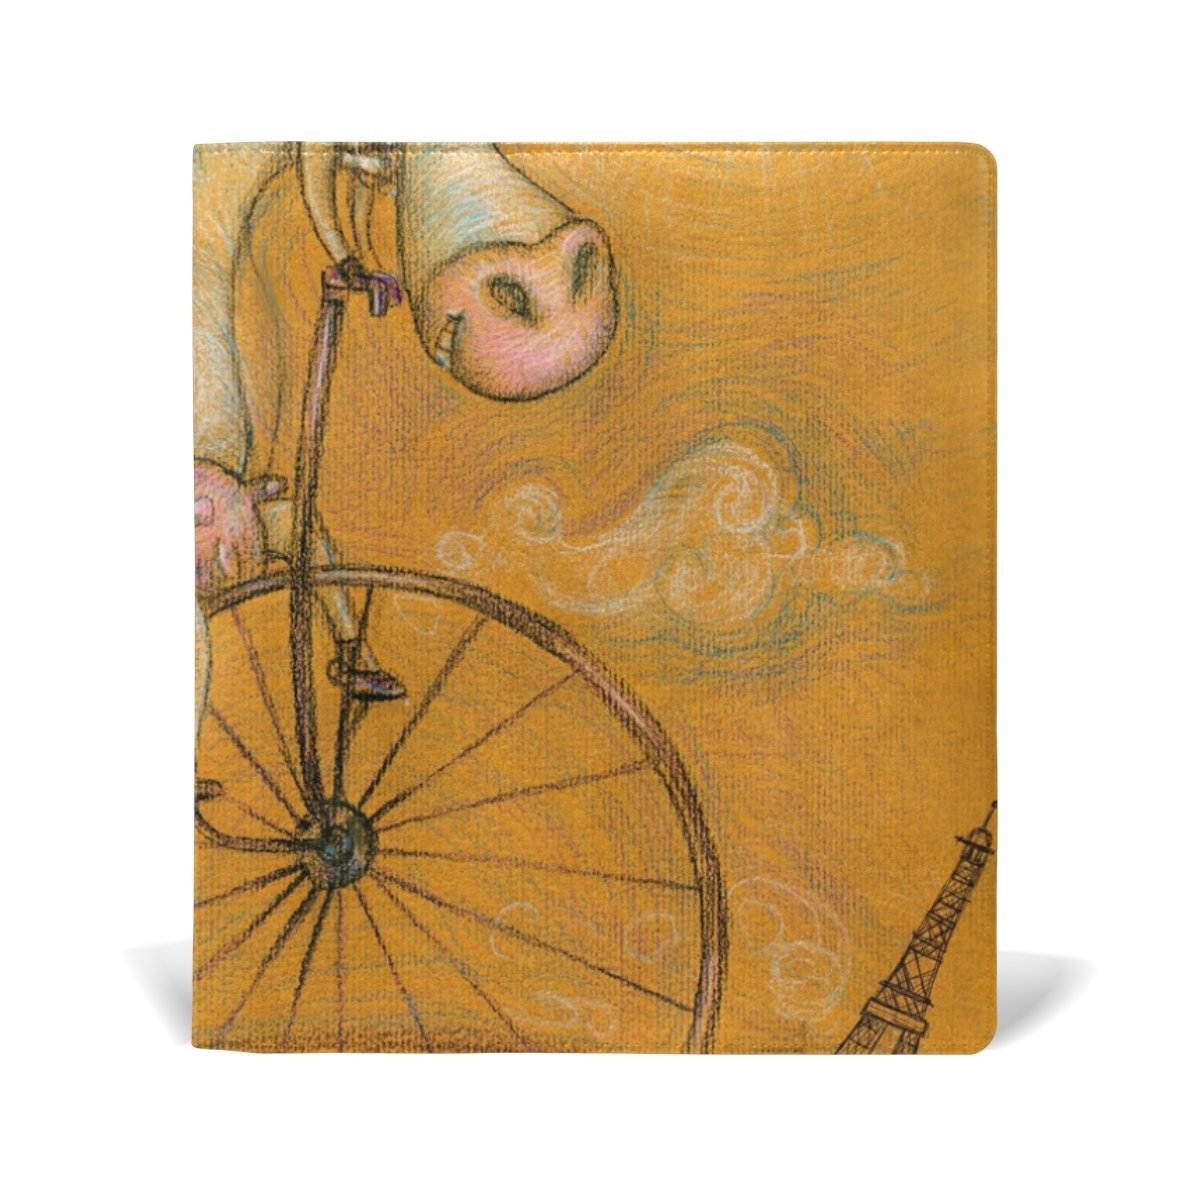 Sunlome Vintage Cute Cow On The Bicycle Pattern Stretchable PU Leather Book Cover 9 x 11 Inches Fits for School Hardcover Textbooks